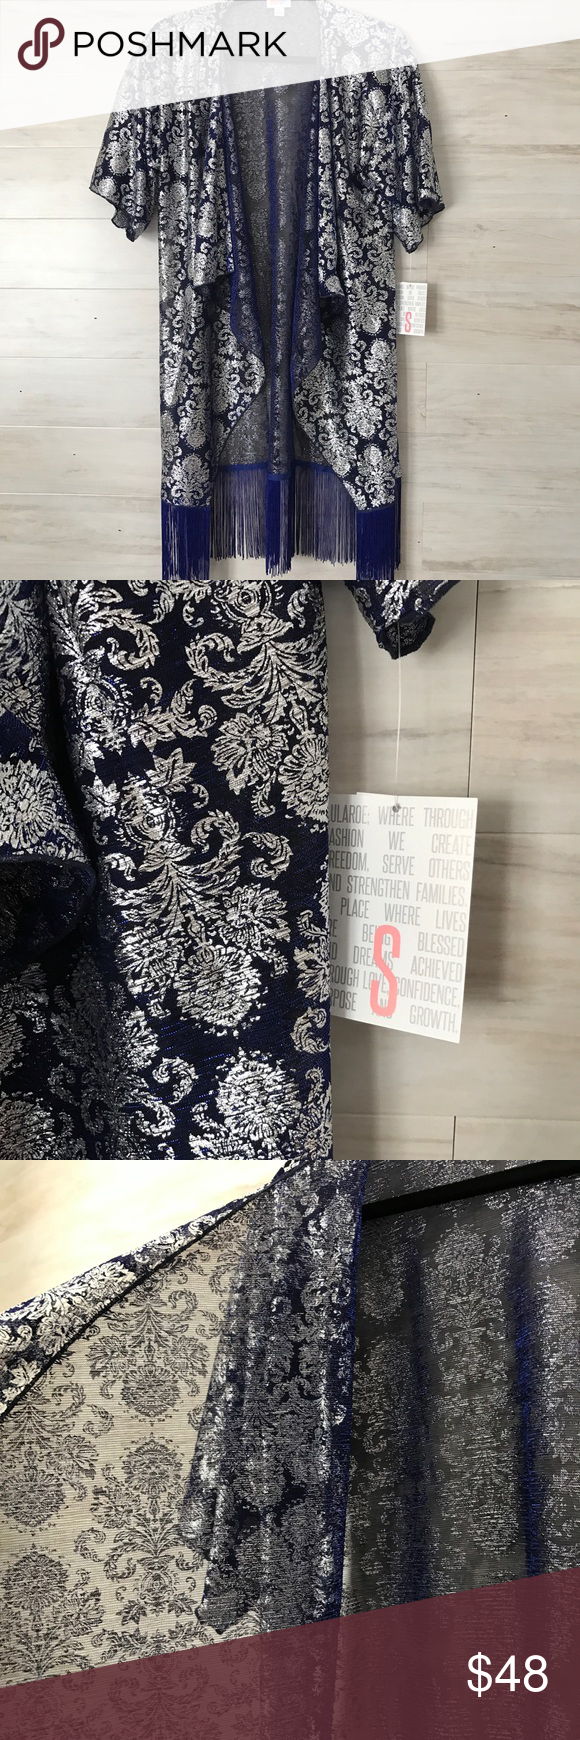 NWT Elegant Monroe Kimono Stunning blue and silver Monroe kimono by LuLaRoe. Beautiful dark blue fringe along the bottom. Slightly sheer so it's lightweight and perfect for layering. Easy way to dress up an outfit. From the Elegance Collection. Size S. NWT never worn. Bundle to save or make an offer! LuLaRoe Tops